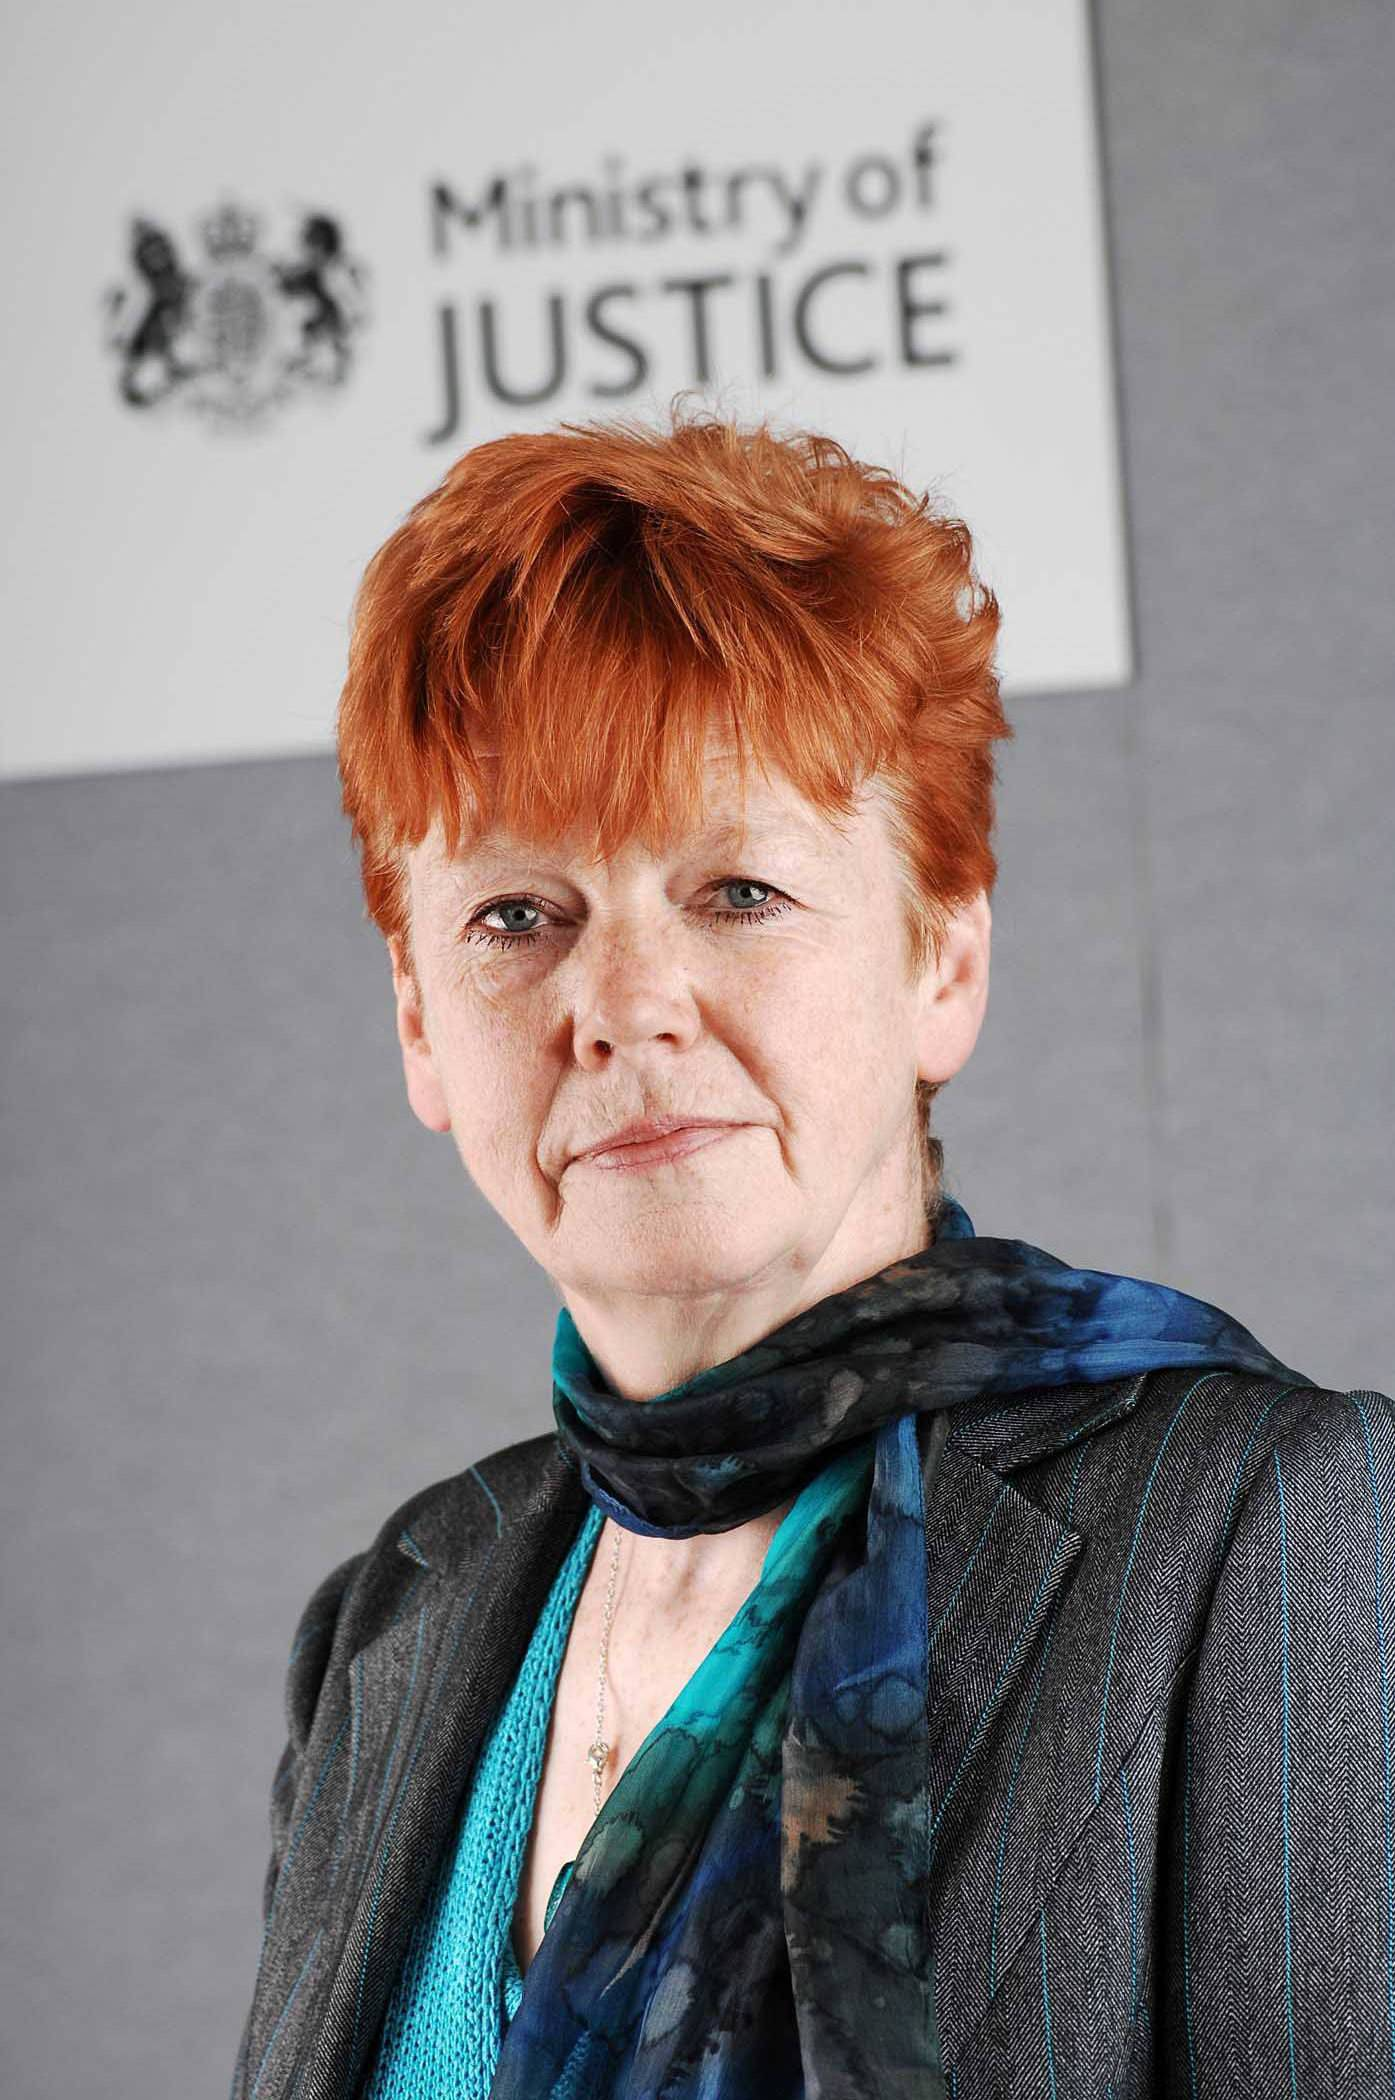 Dame Vera Baird is asking for the public's help in funding policing.